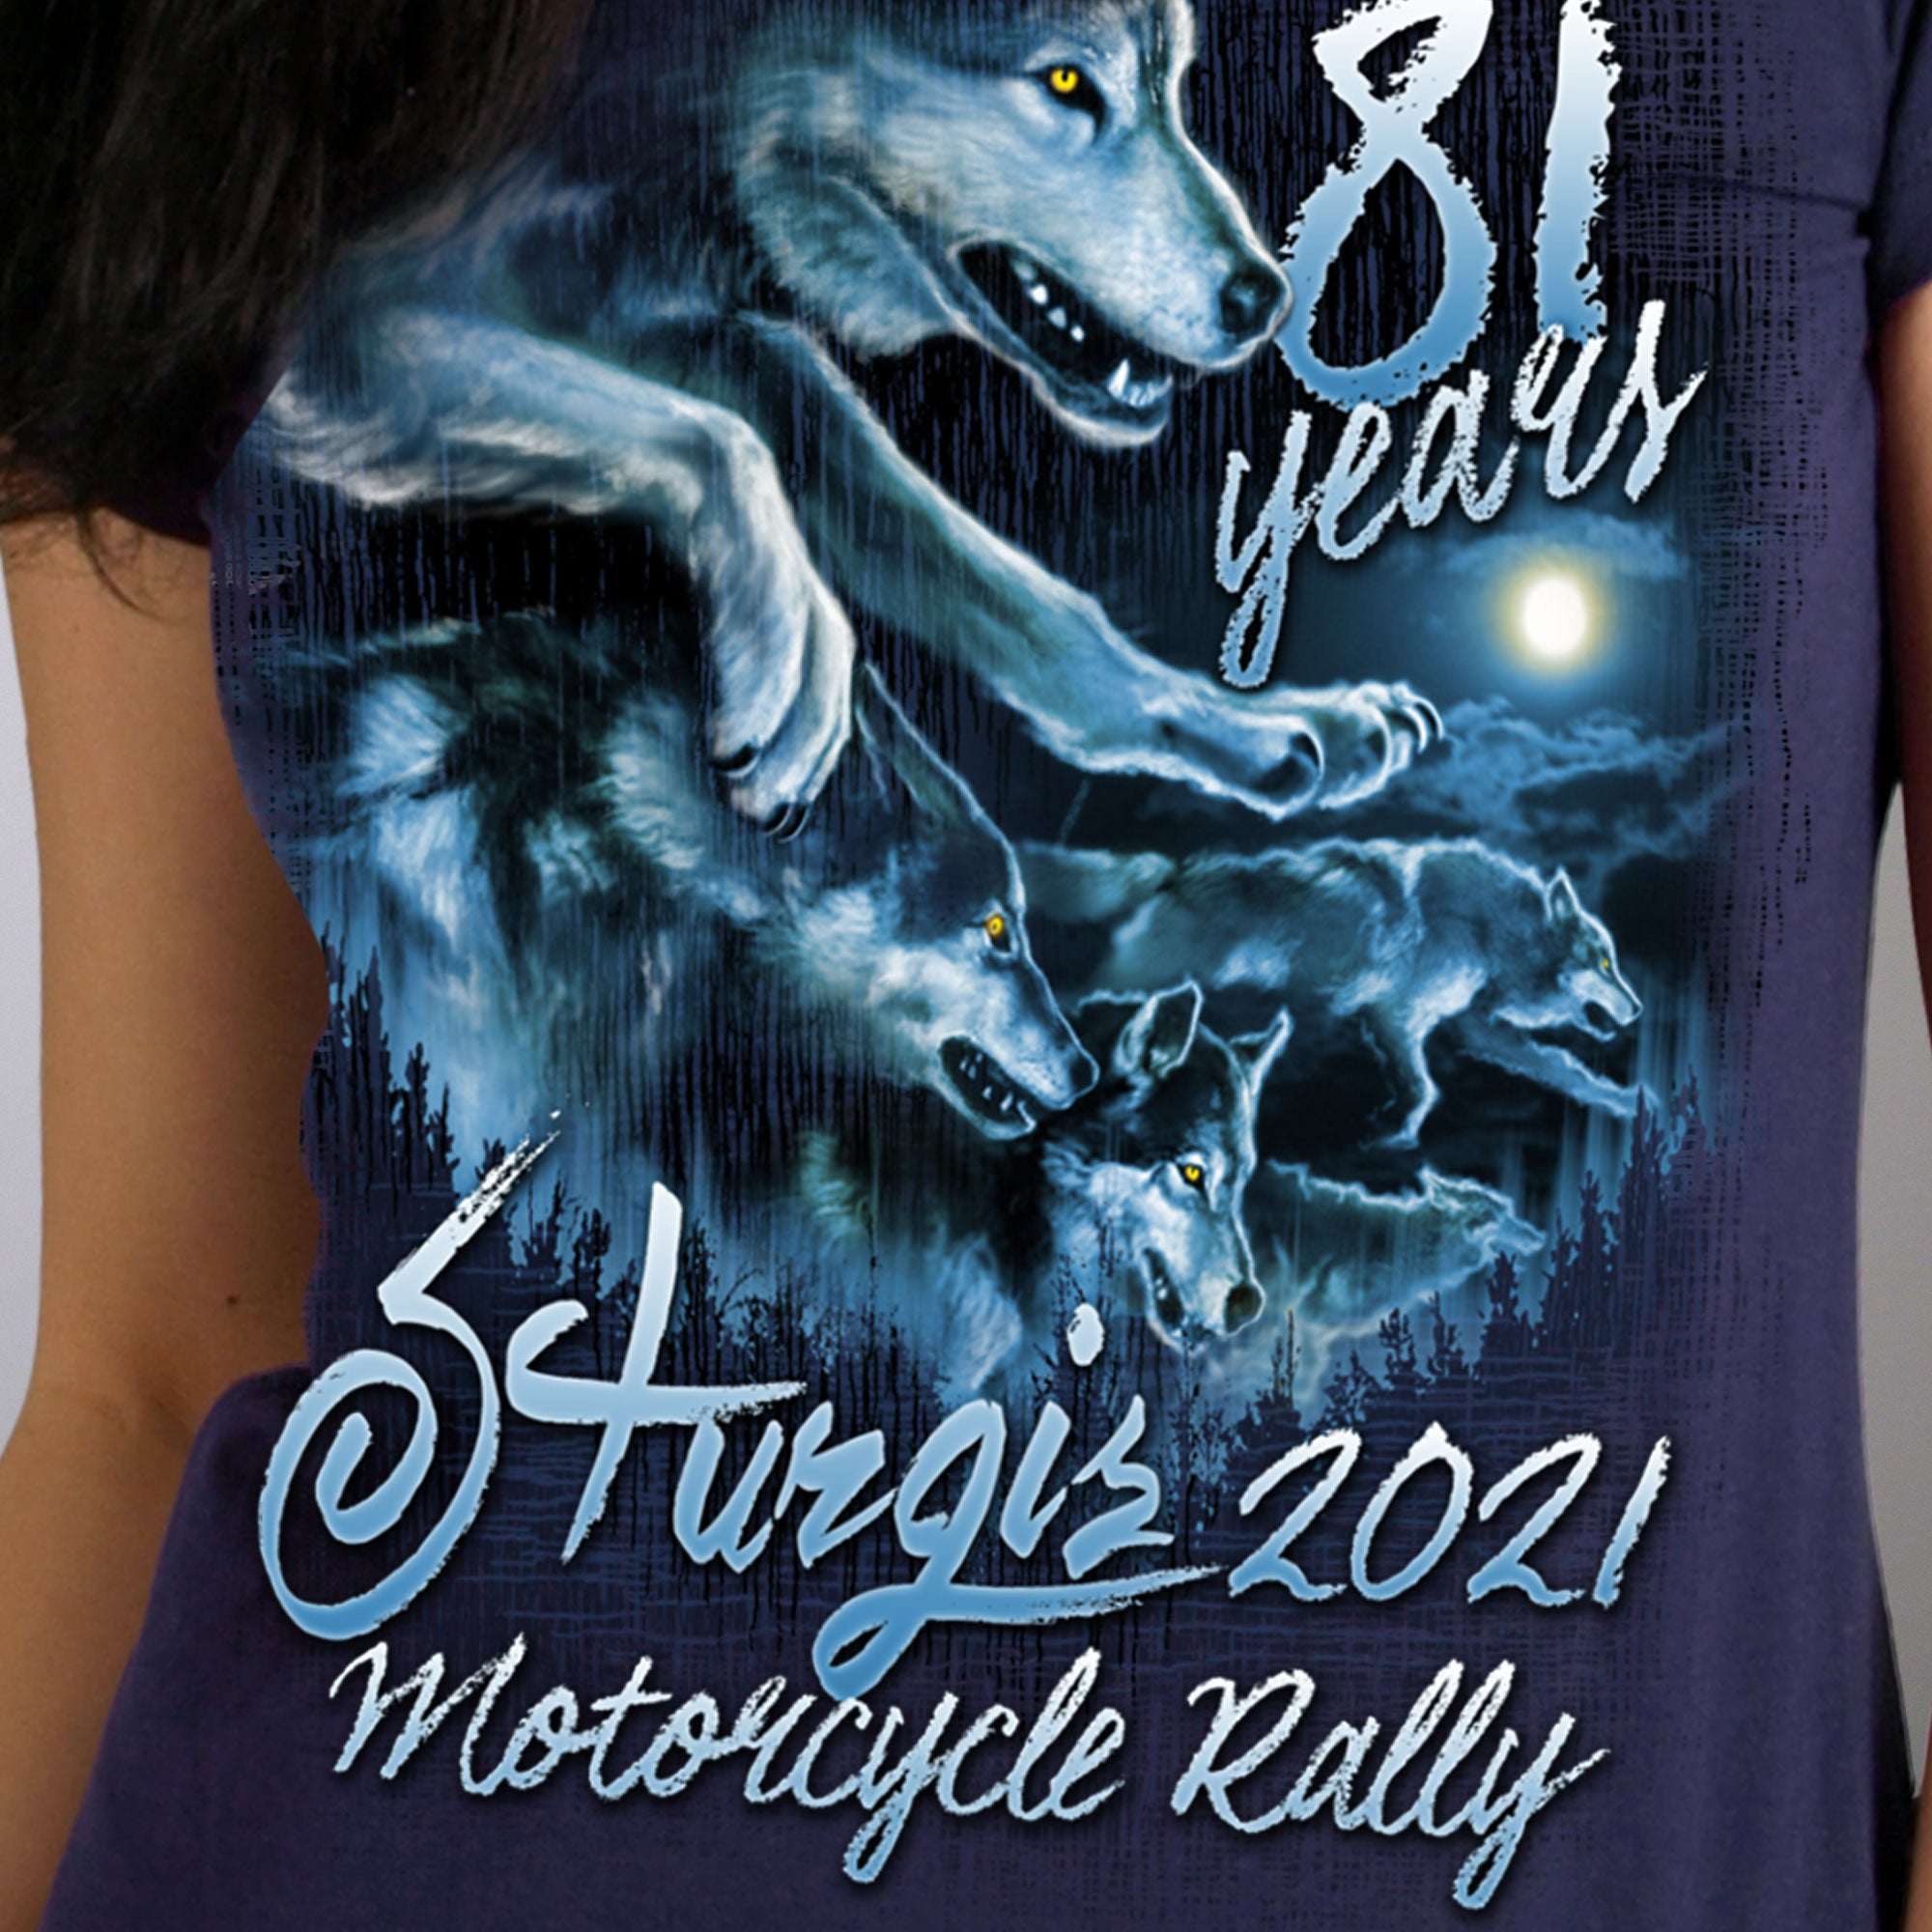 Sturgis 2021 Motorcycle Rally Wolf Pack T shirt